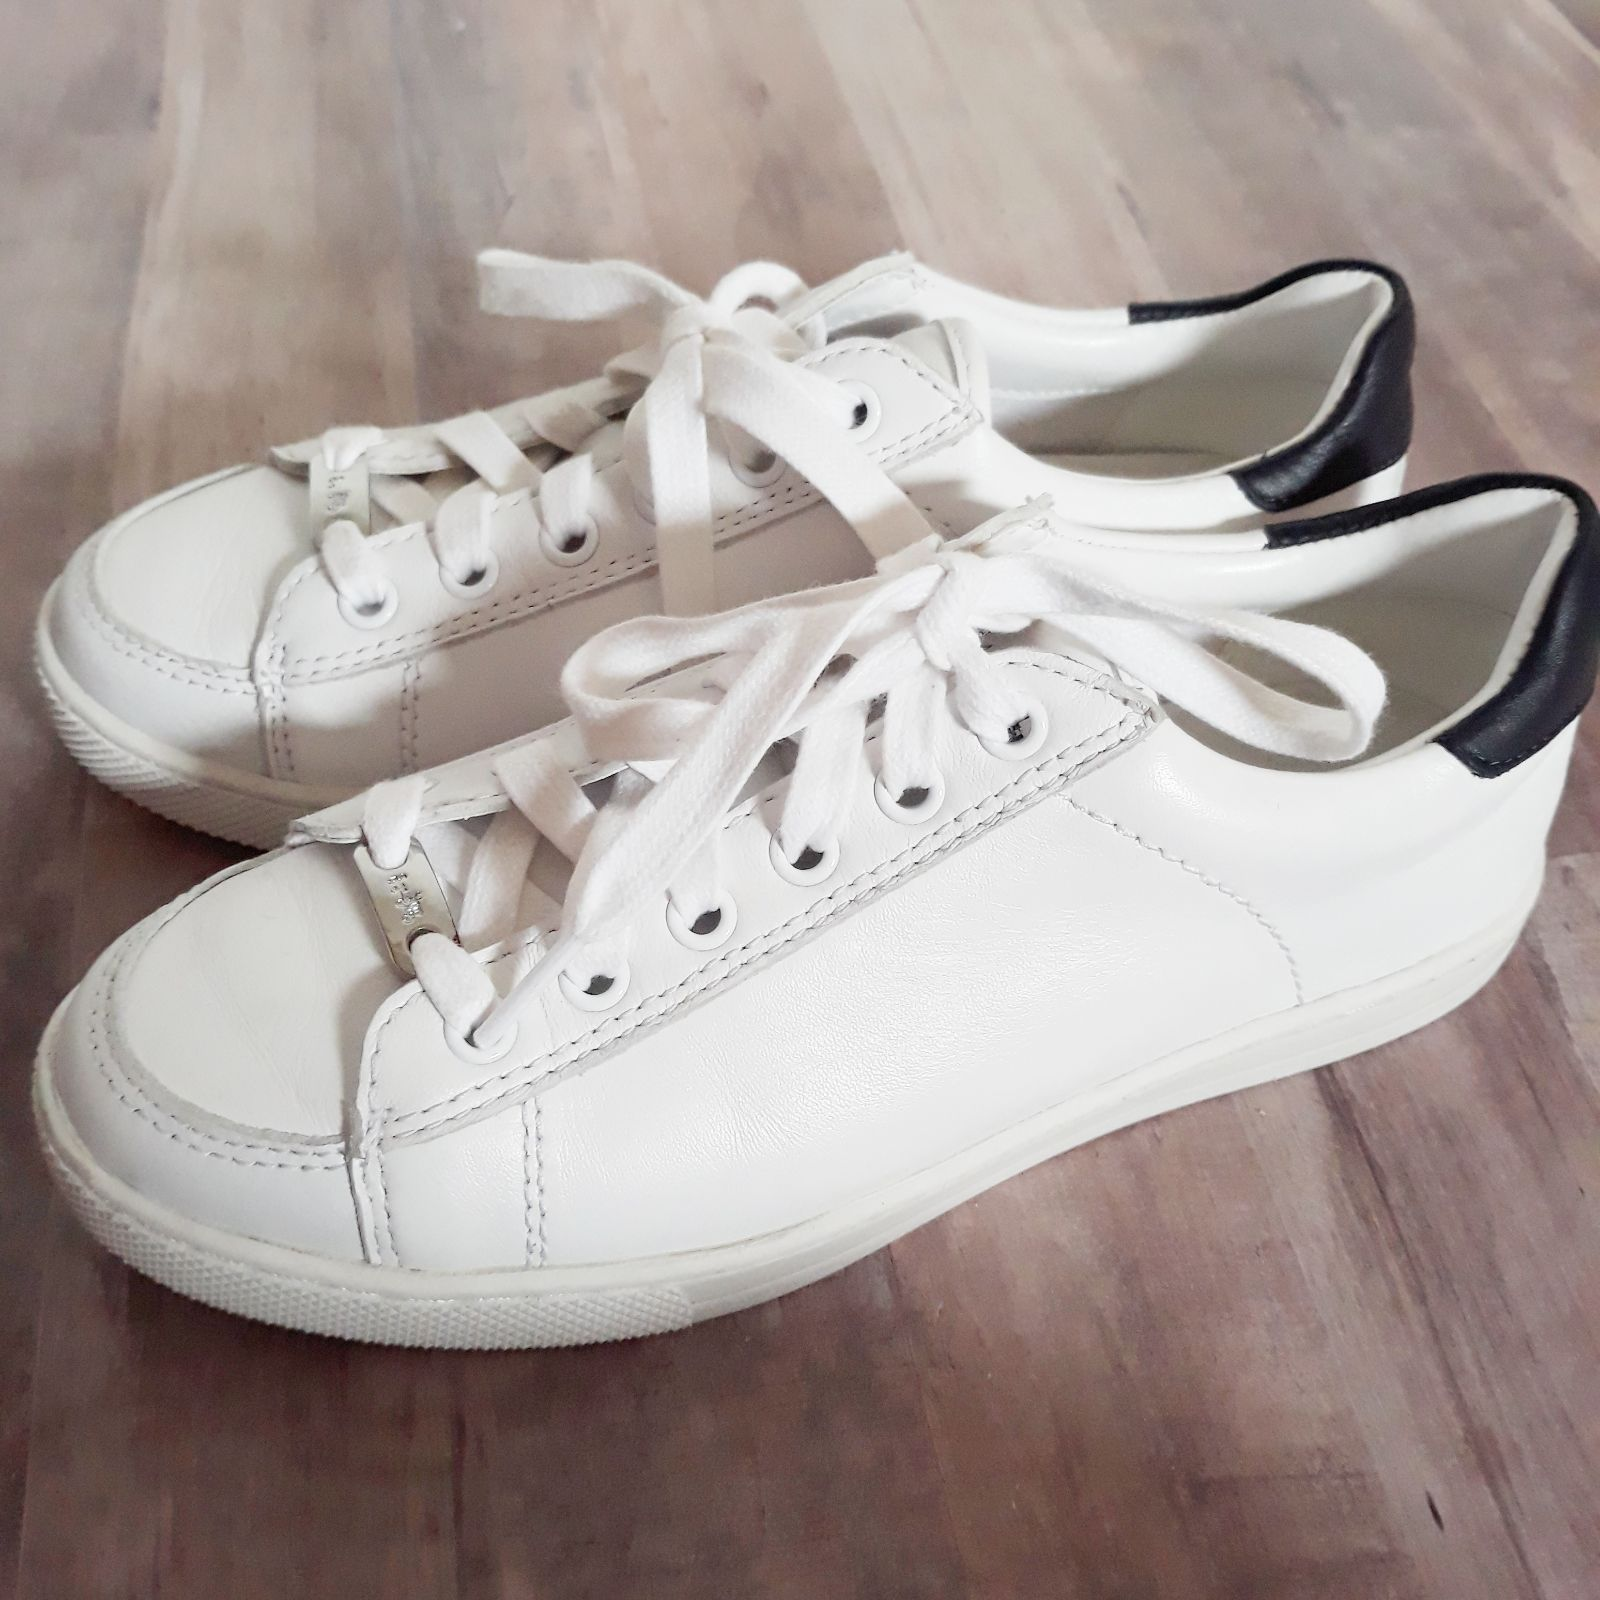 White Leather Tennis Shoes By Coach. Features Black Heels